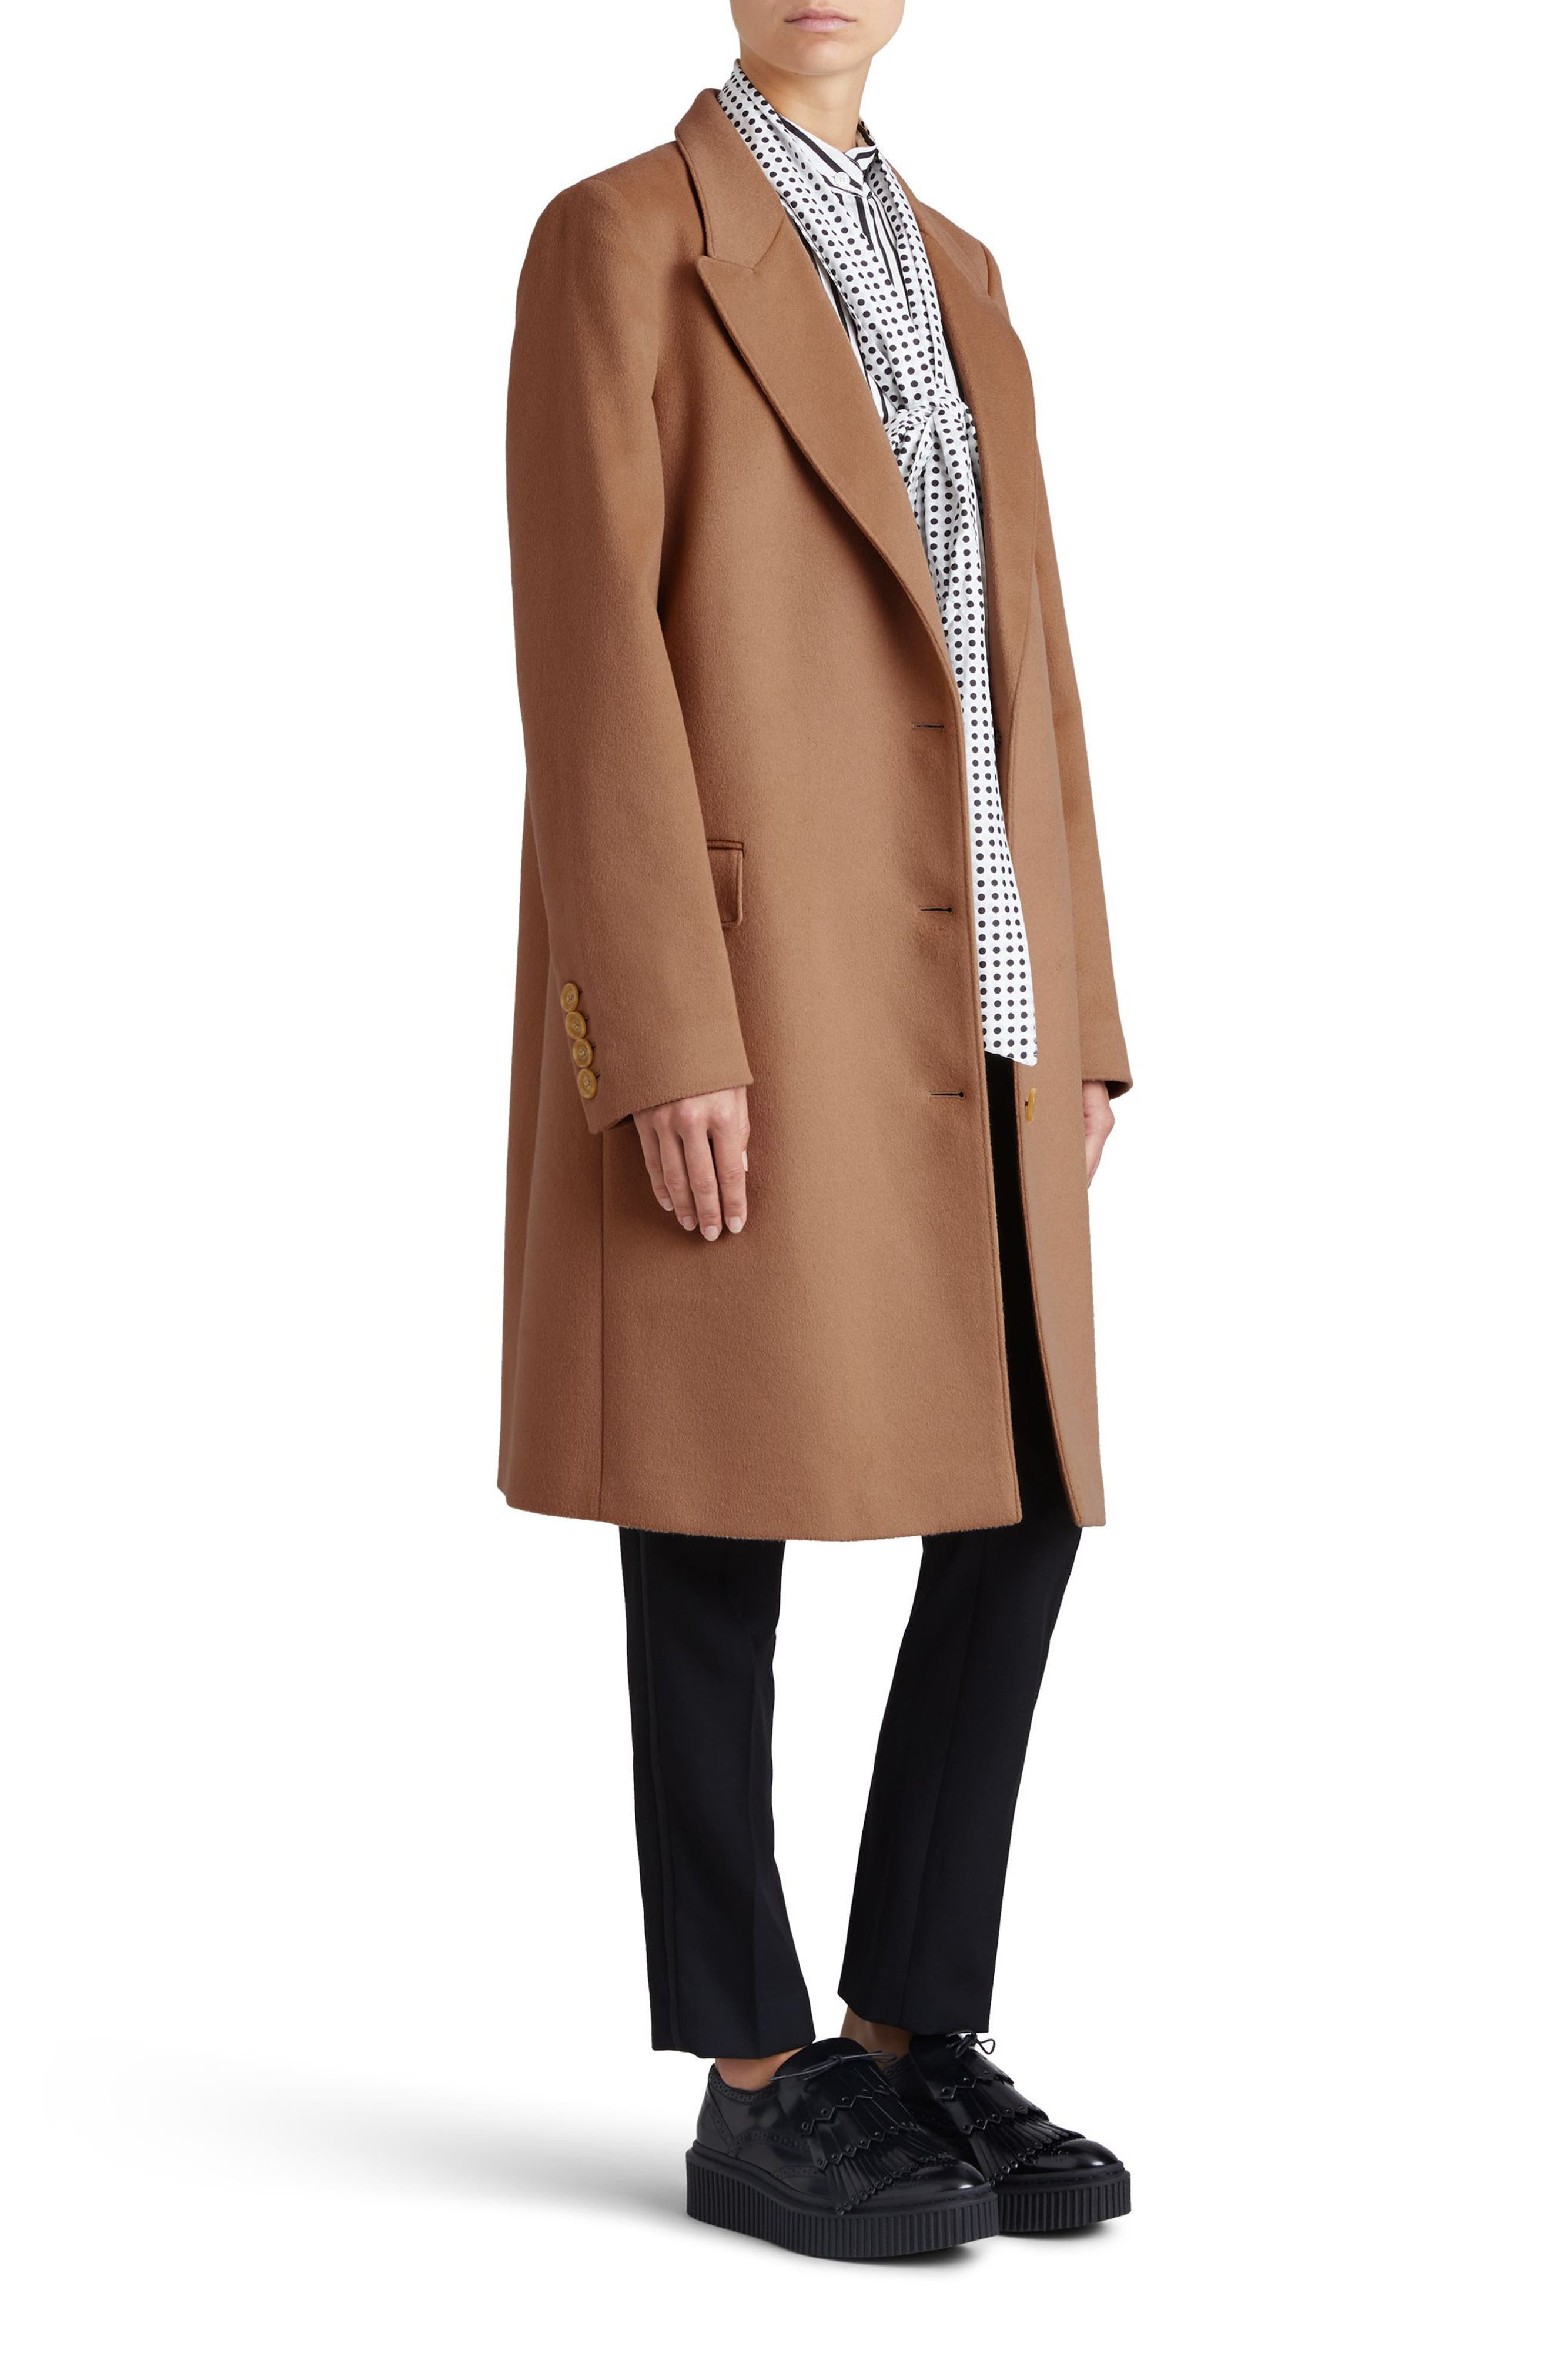 Fellhurst Wool & Cashmere Coat,                             Alternate thumbnail 4, color,                             Camel